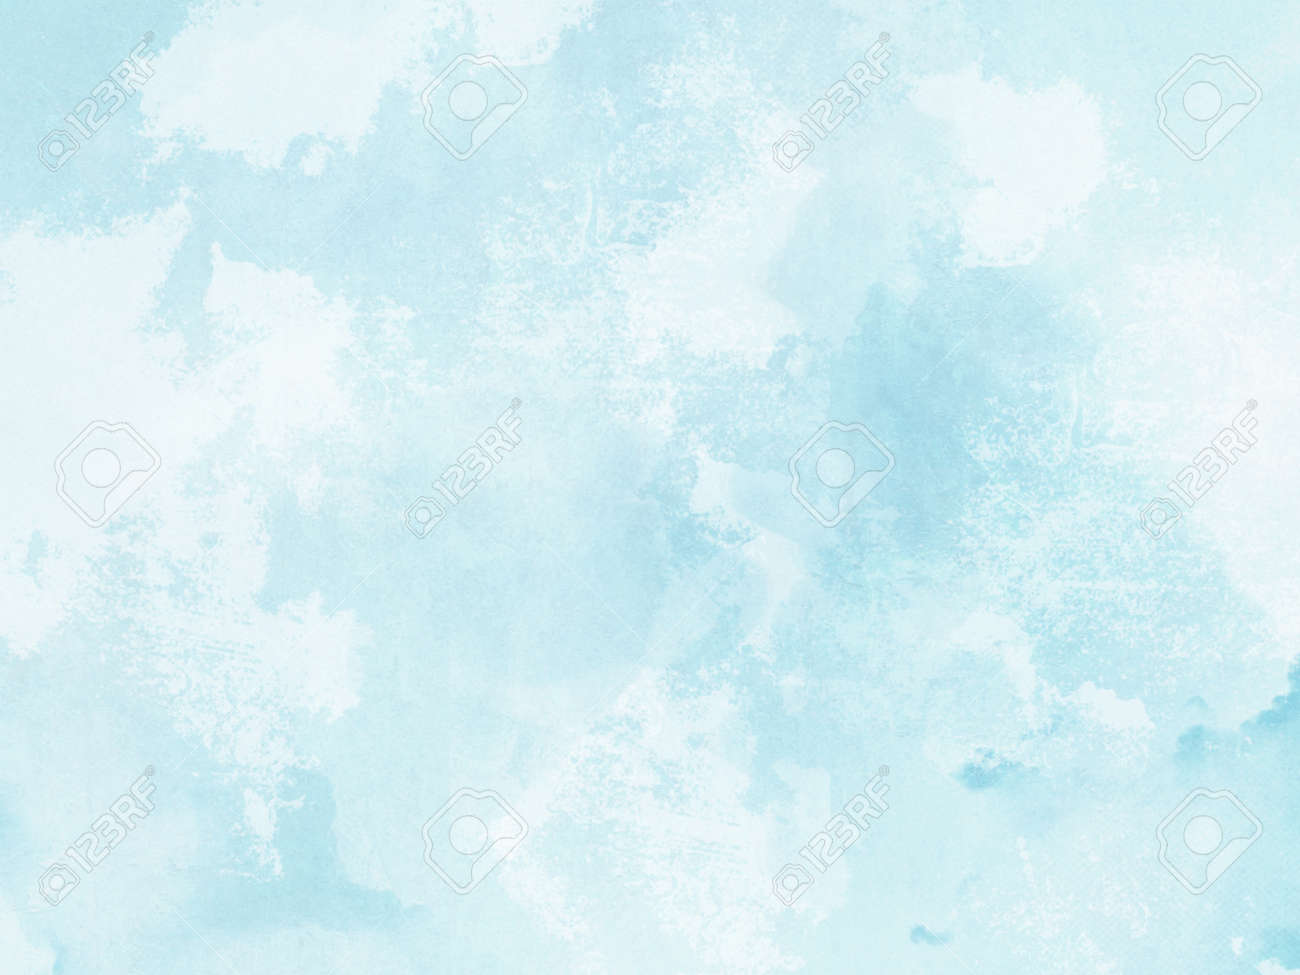 Watercolor Background Abstract Pastel Blue Texture Stock Photo Picture And Royalty Free Image Image 105288604